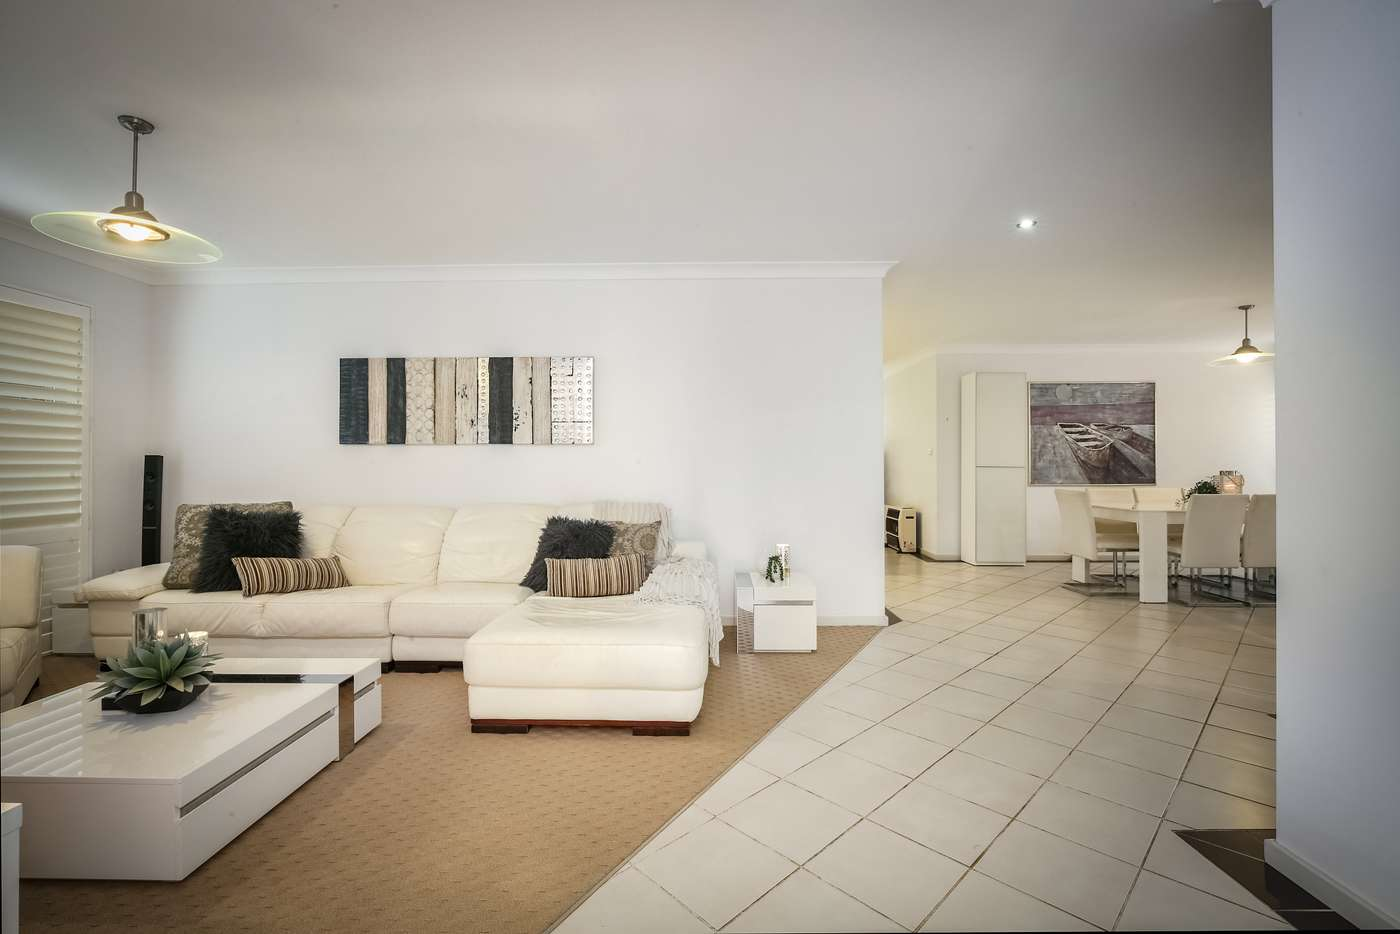 Fifth view of Homely house listing, 21 Magnolia Avenue, Davistown NSW 2251